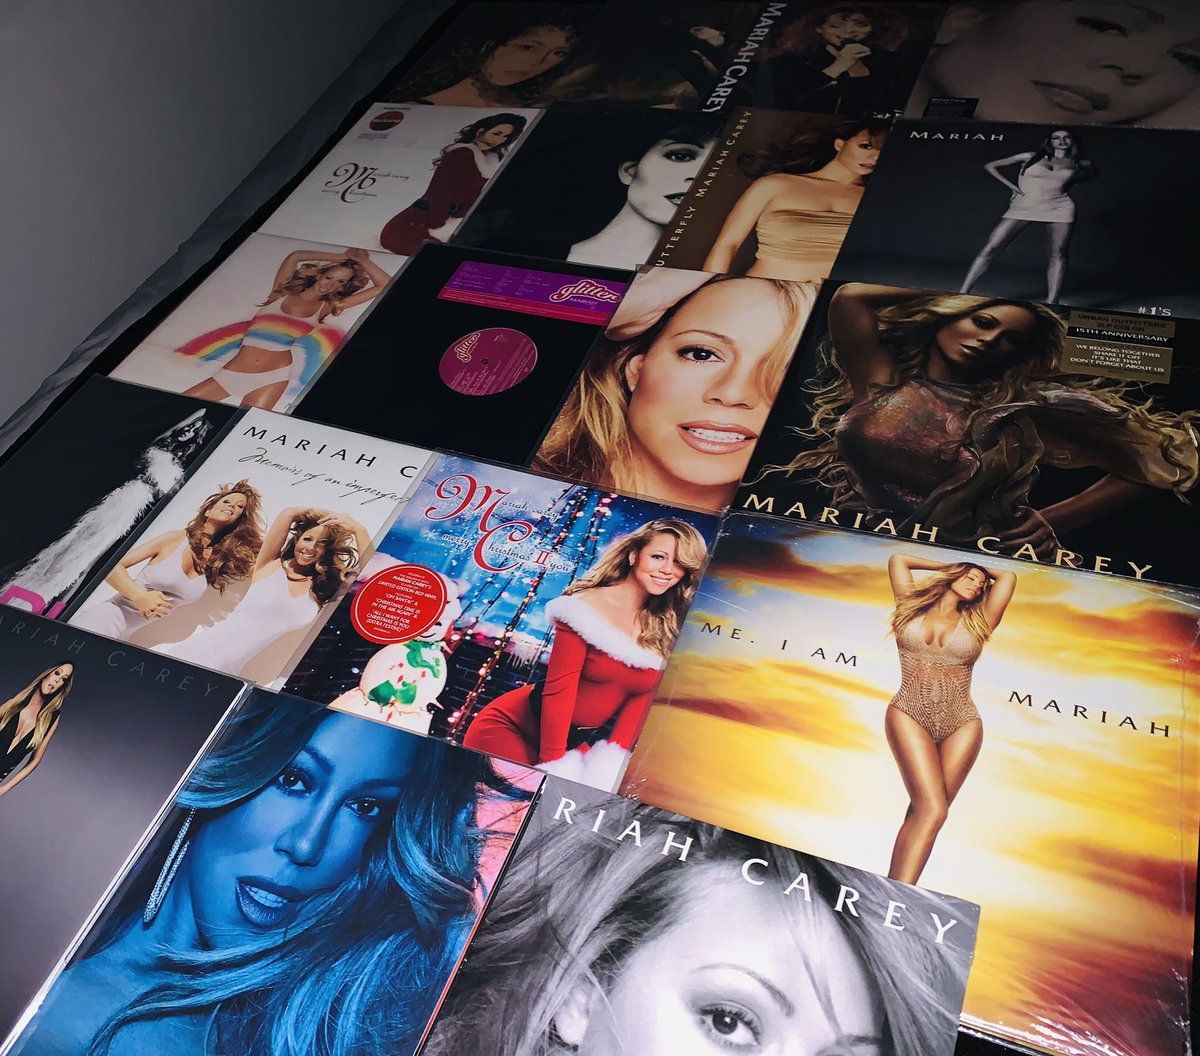 @MariahCarey The vinyl collection is complete, Queen! ❤️🐑  #lambily  #mariahcarey